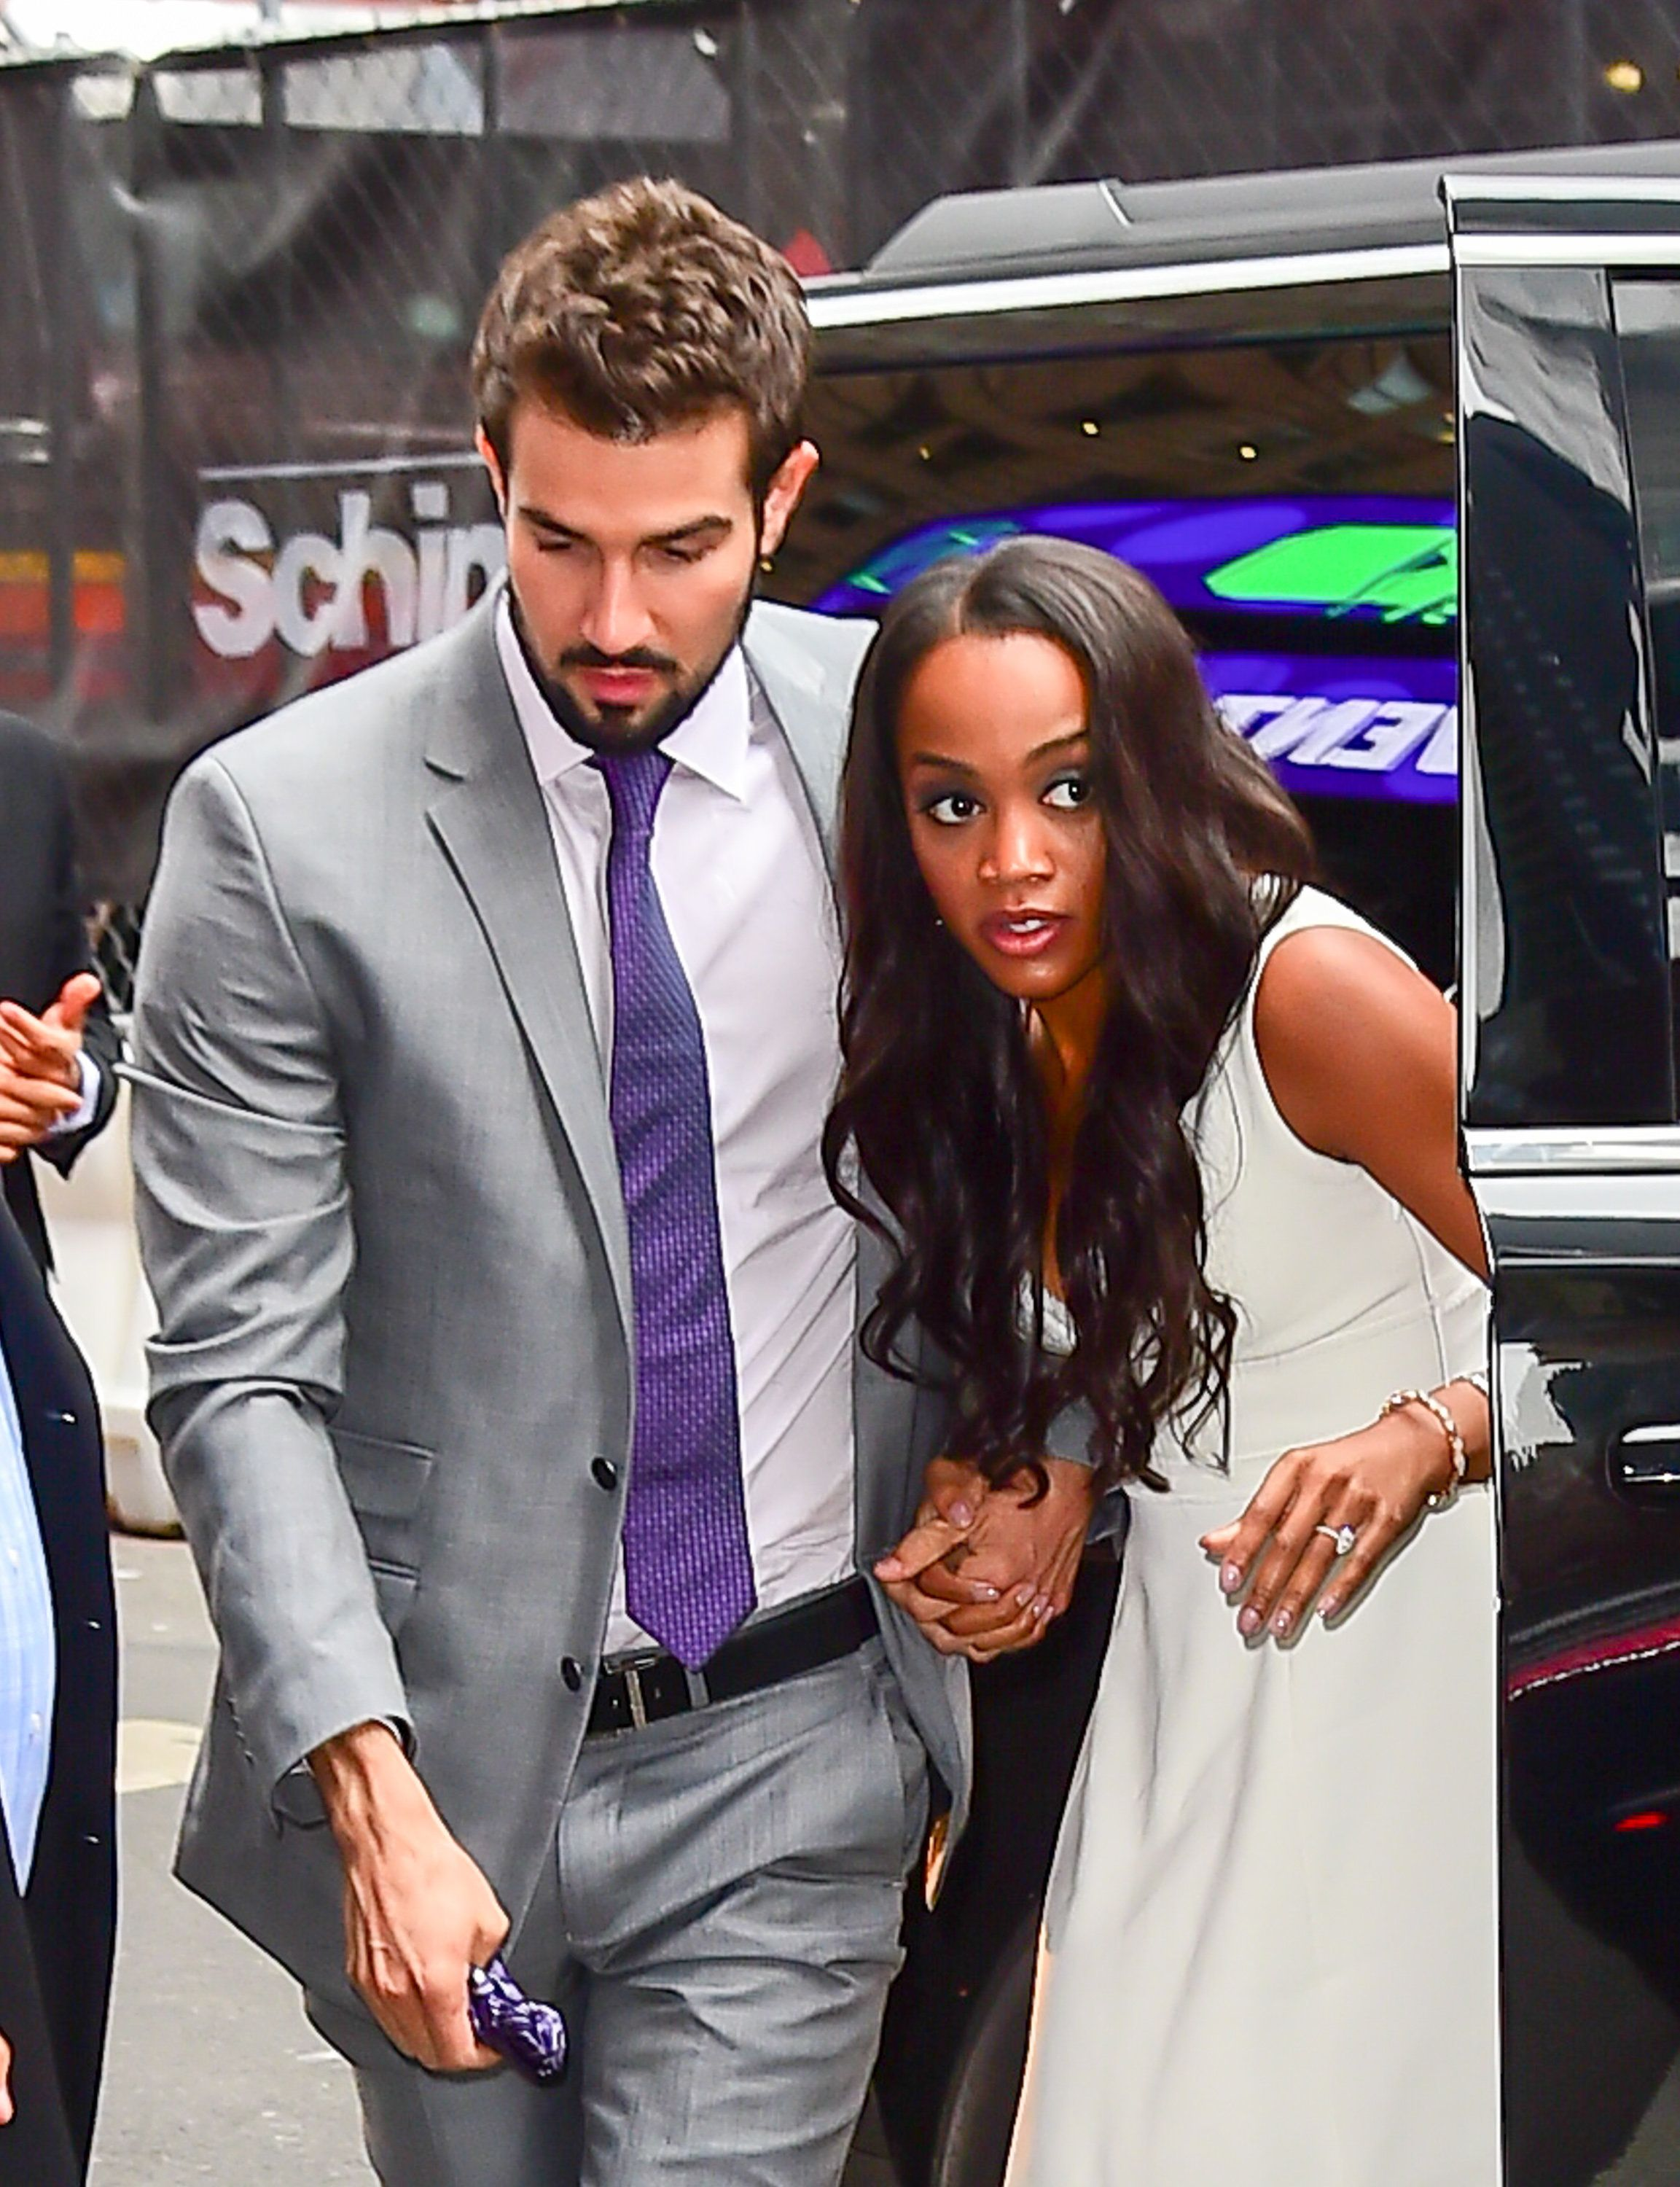 NEW YORK, NY - AUGUST 08:  - Bachelorette's Rachel Lindsay and her fiance, Bryan Abasolo are seen arrived at 'Good Morning America' on August 8, 2017 in New York City.  (Photo by Raymond Hall/GC Images)